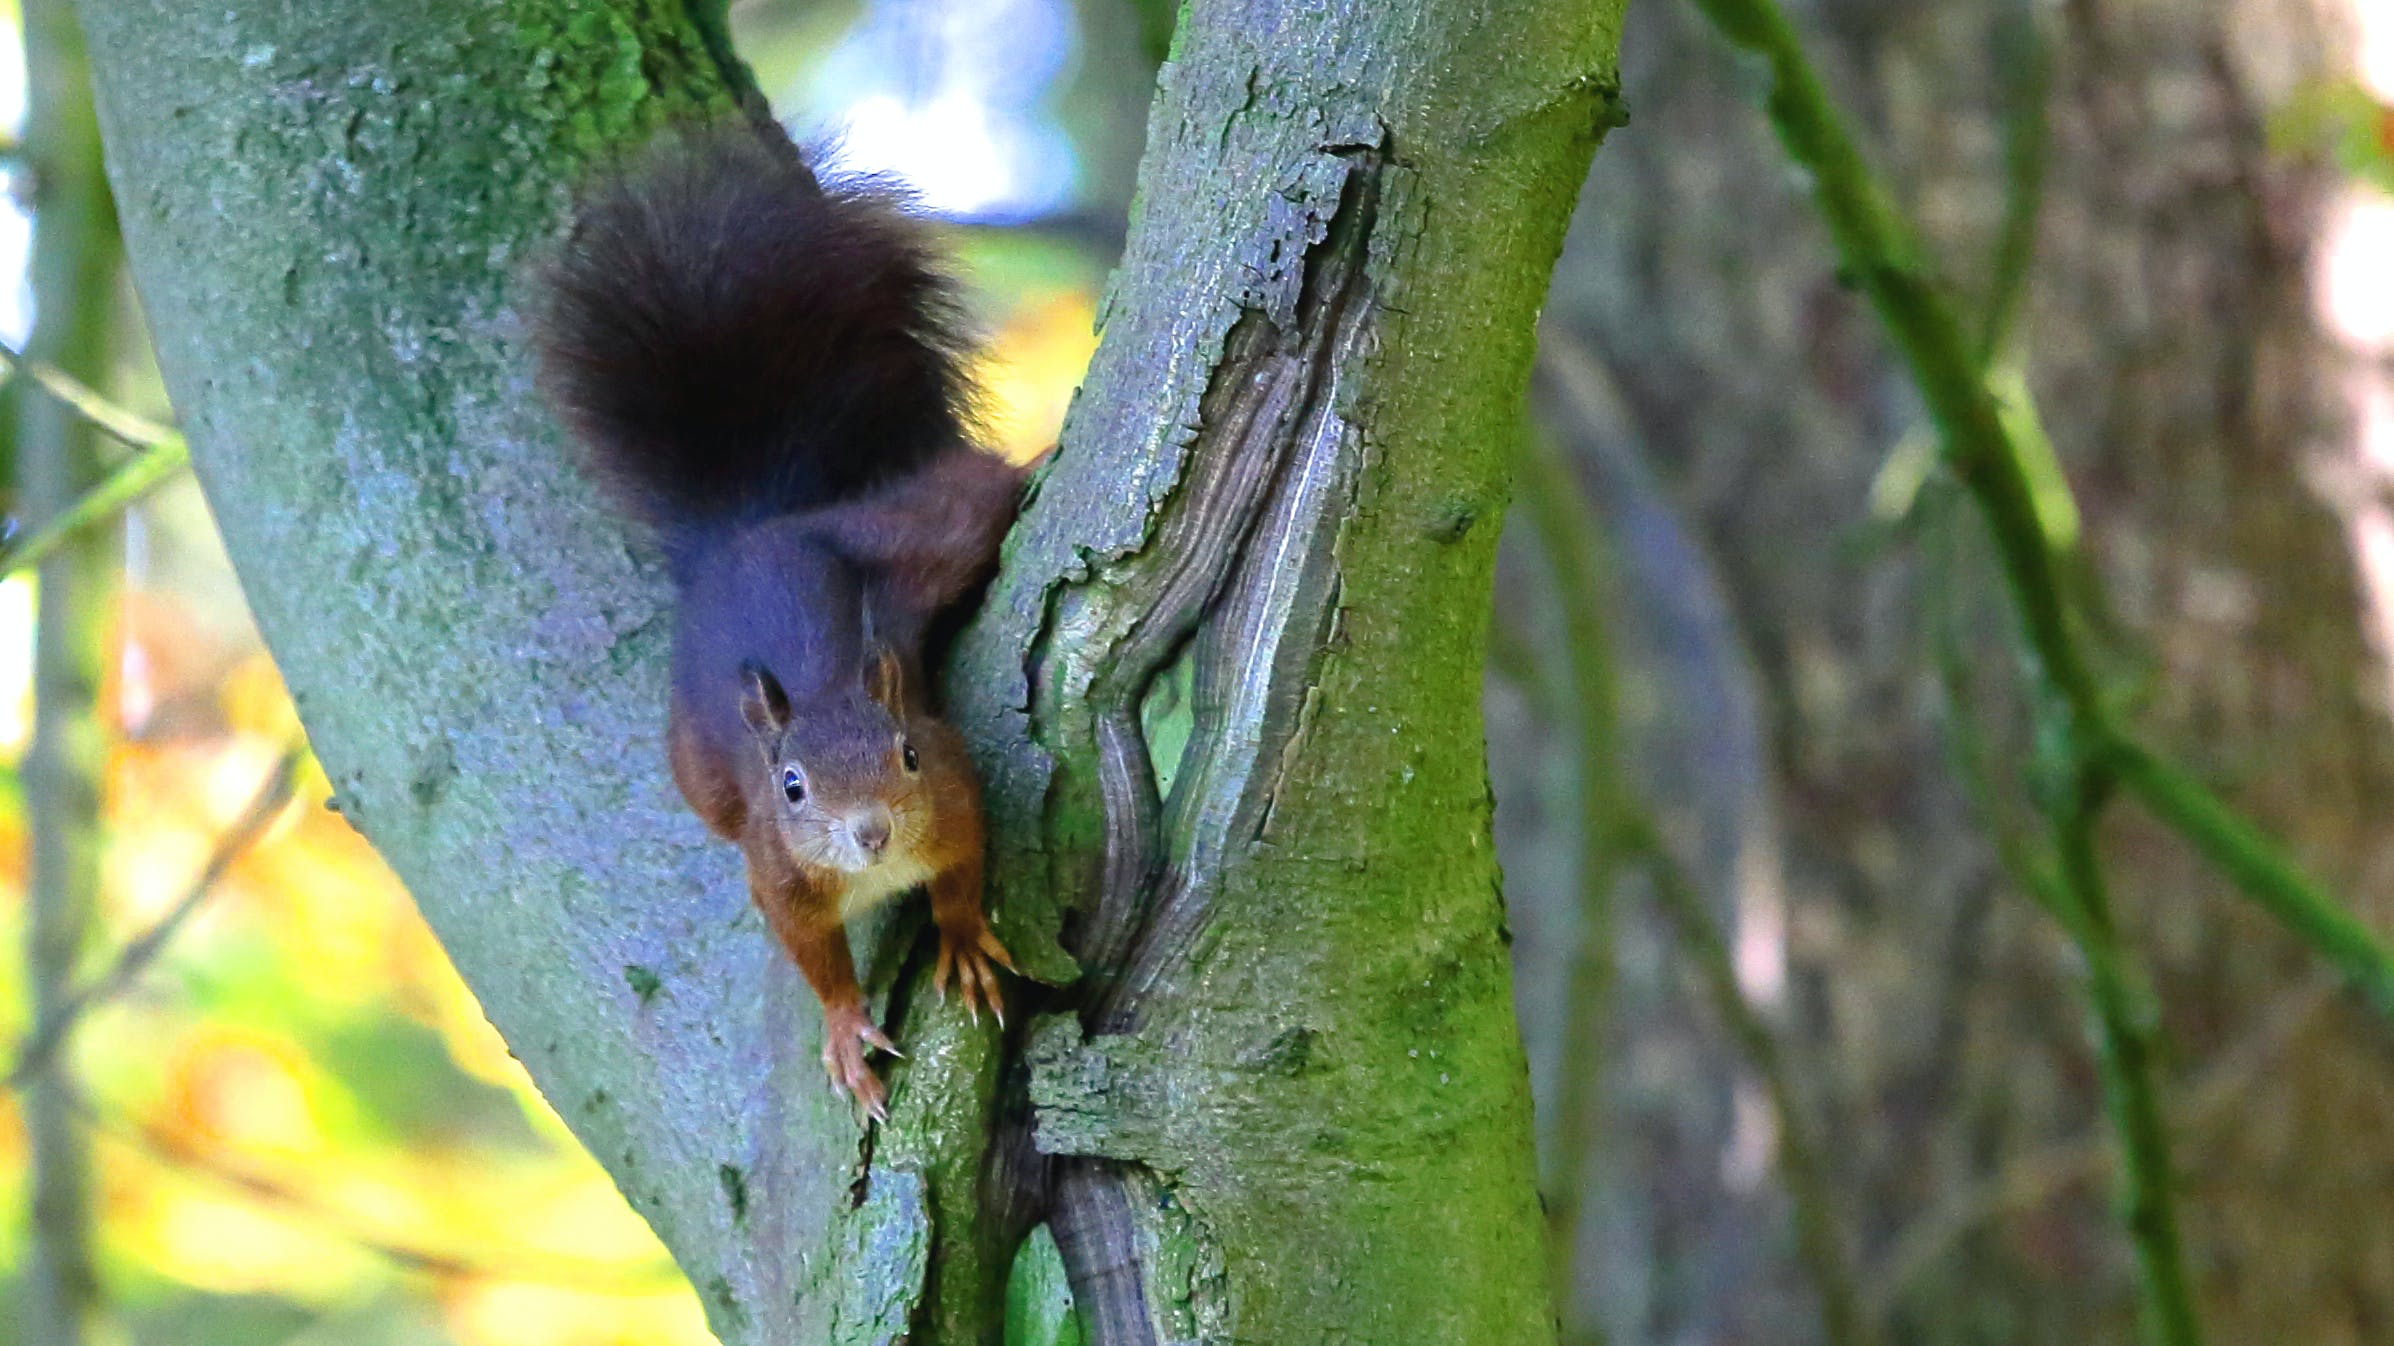 Brown Squirrel in Green Tree Trunk